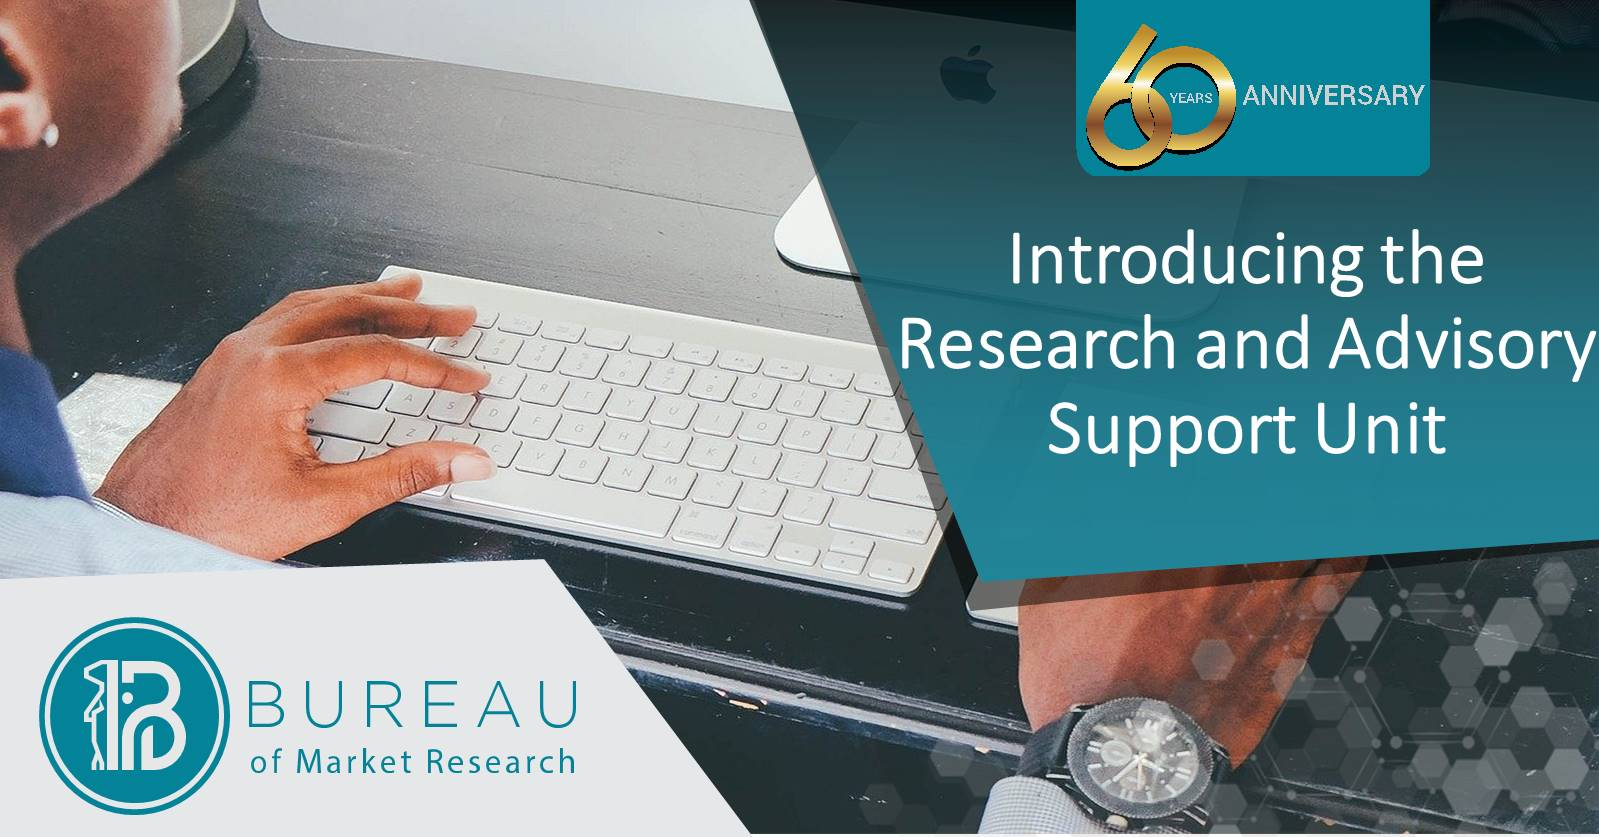 Introducing the Research and Advisory Support Unit